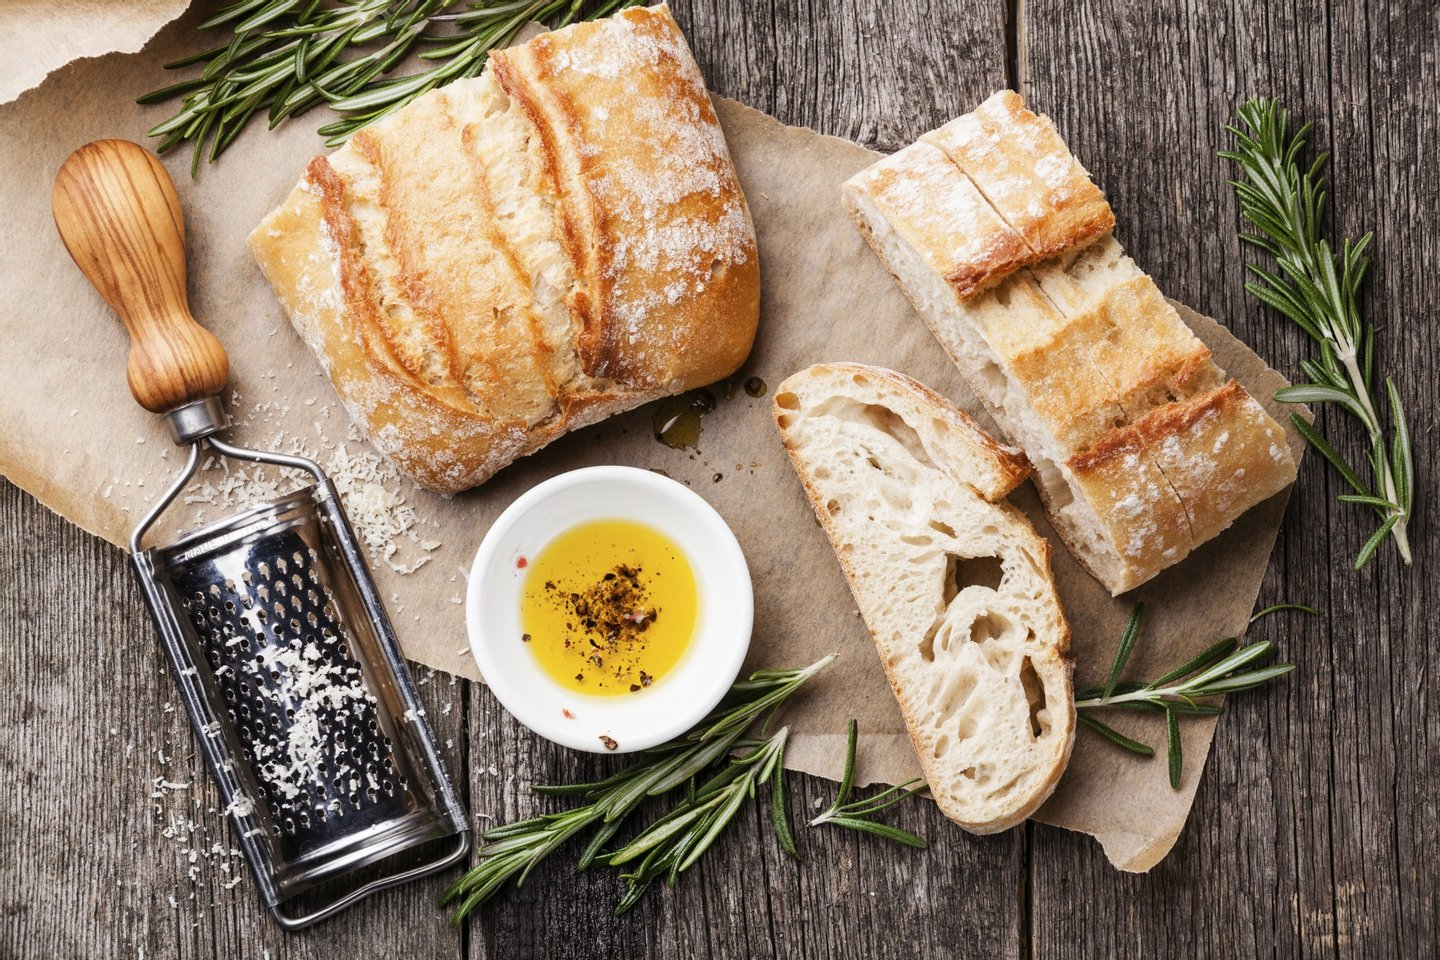 bread, bread ciabatta, ciabatta, cookware, eating, extra virgin, food, grater, ingredient, meal, oil, olive oil, olive wood, parmesan, pepper, rosemary, rustic, seasoning, snack, wooden,